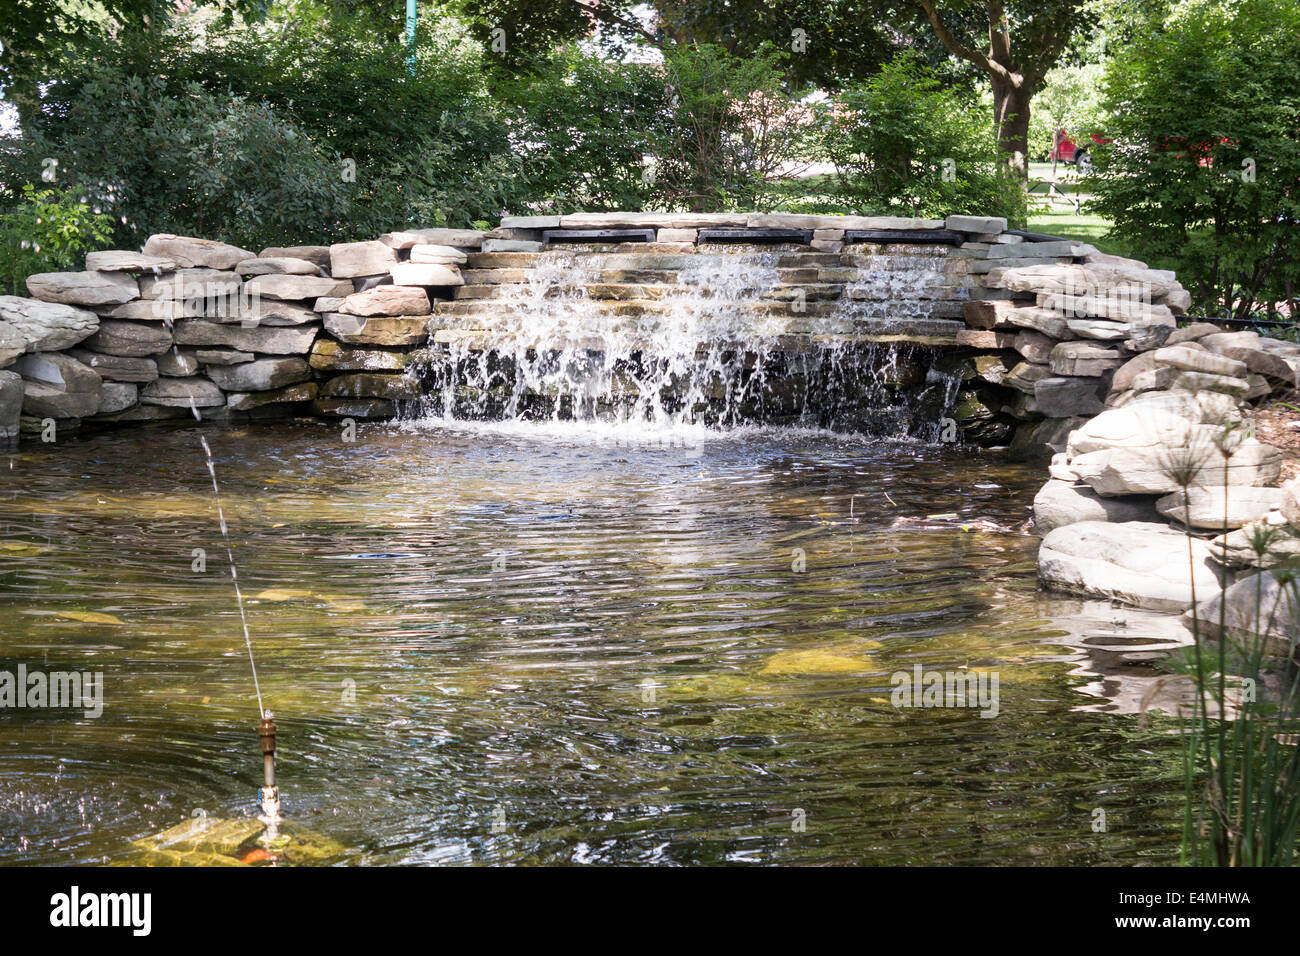 man-made-small-waterfall-surrounded-by-rocks-with-sprinkler-in-victoria-E4MHWA.jpg